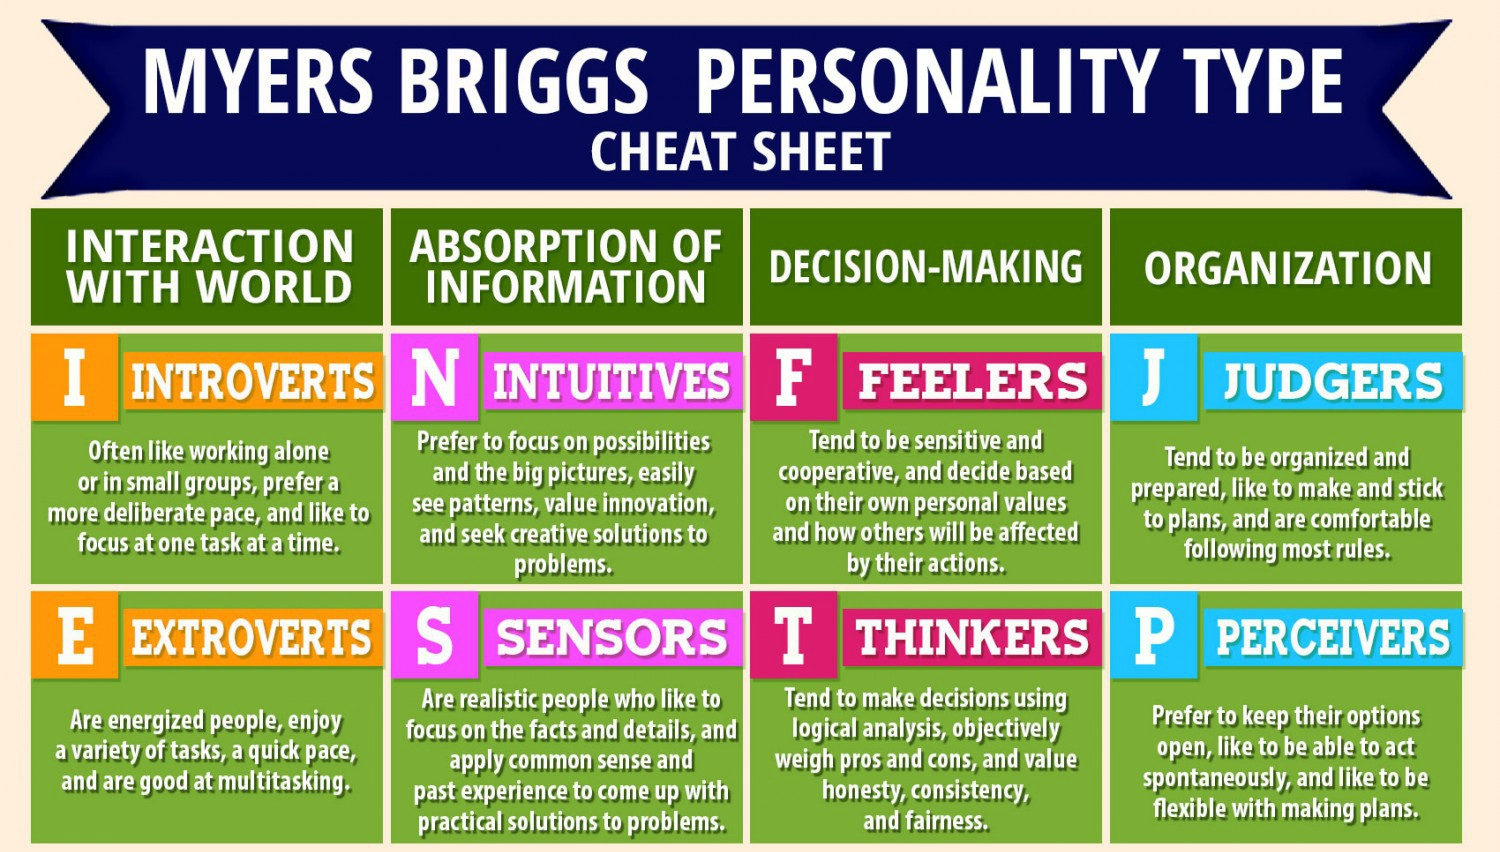 image regarding Myers Briggs Personality Test Printable identified as Mbti products inside of delight in